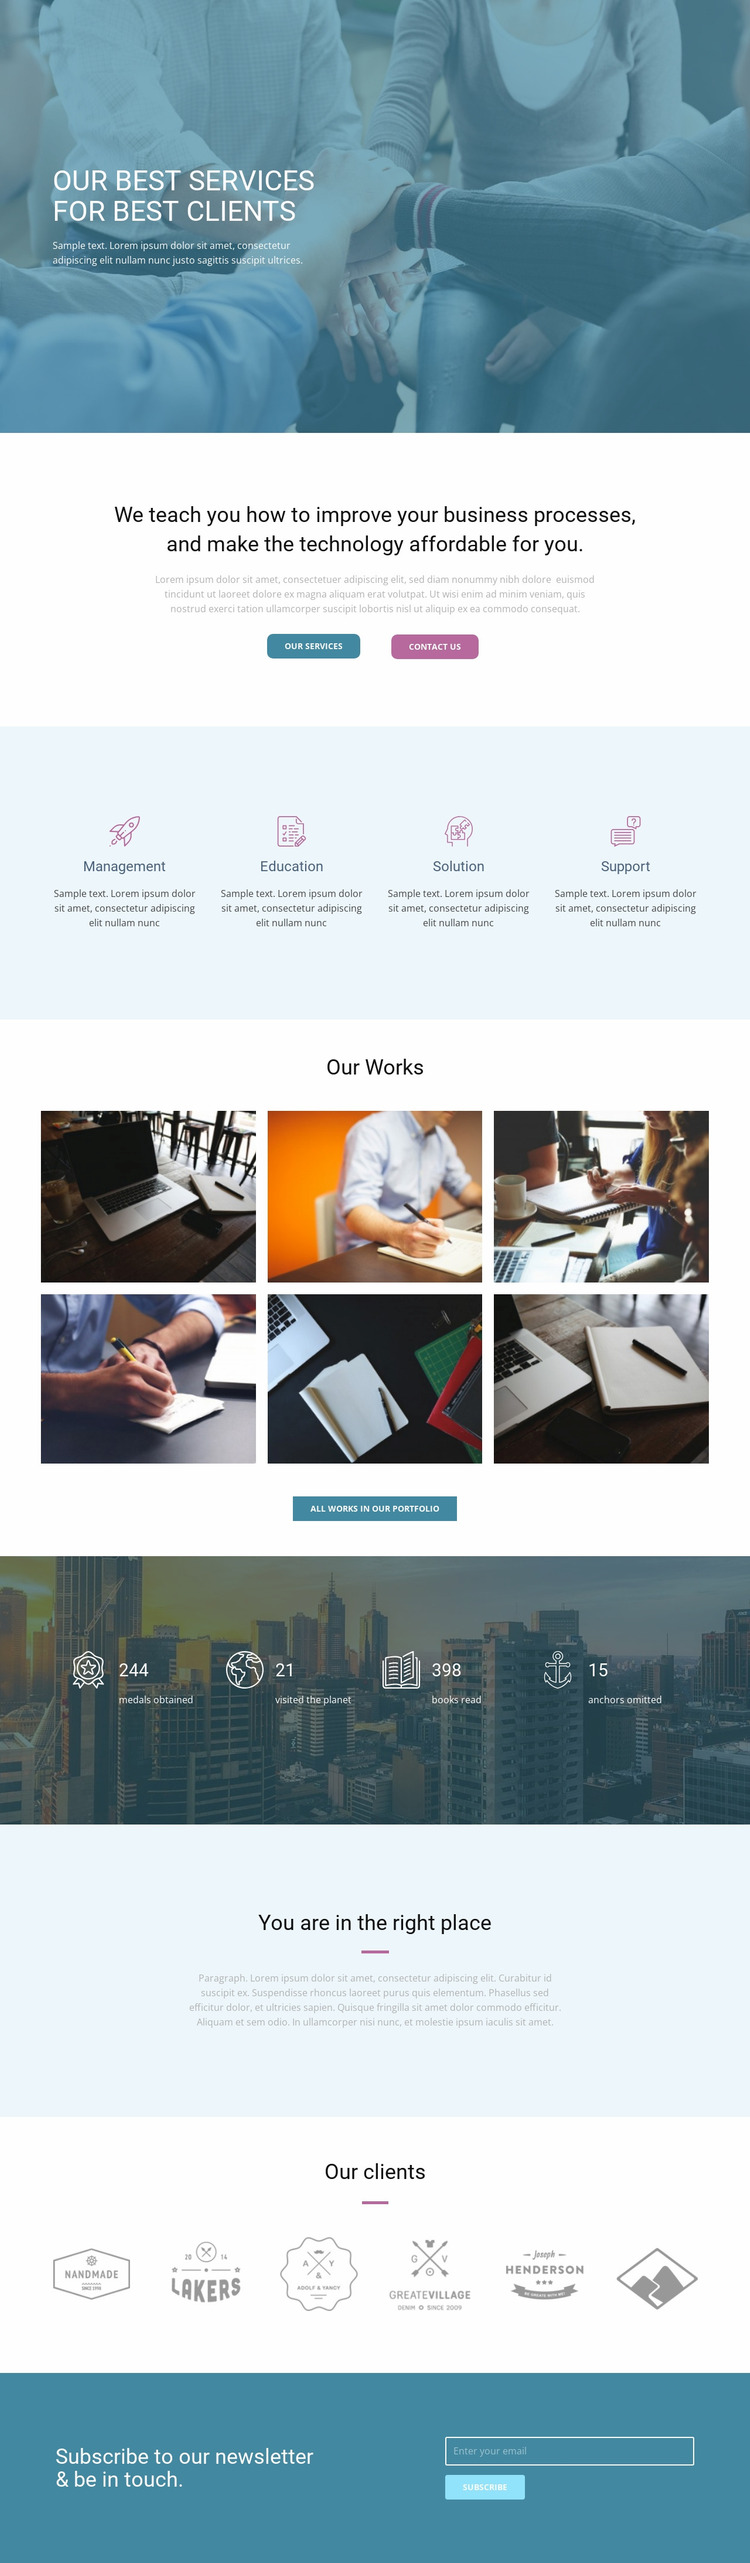 Best services for clients Website Mockup